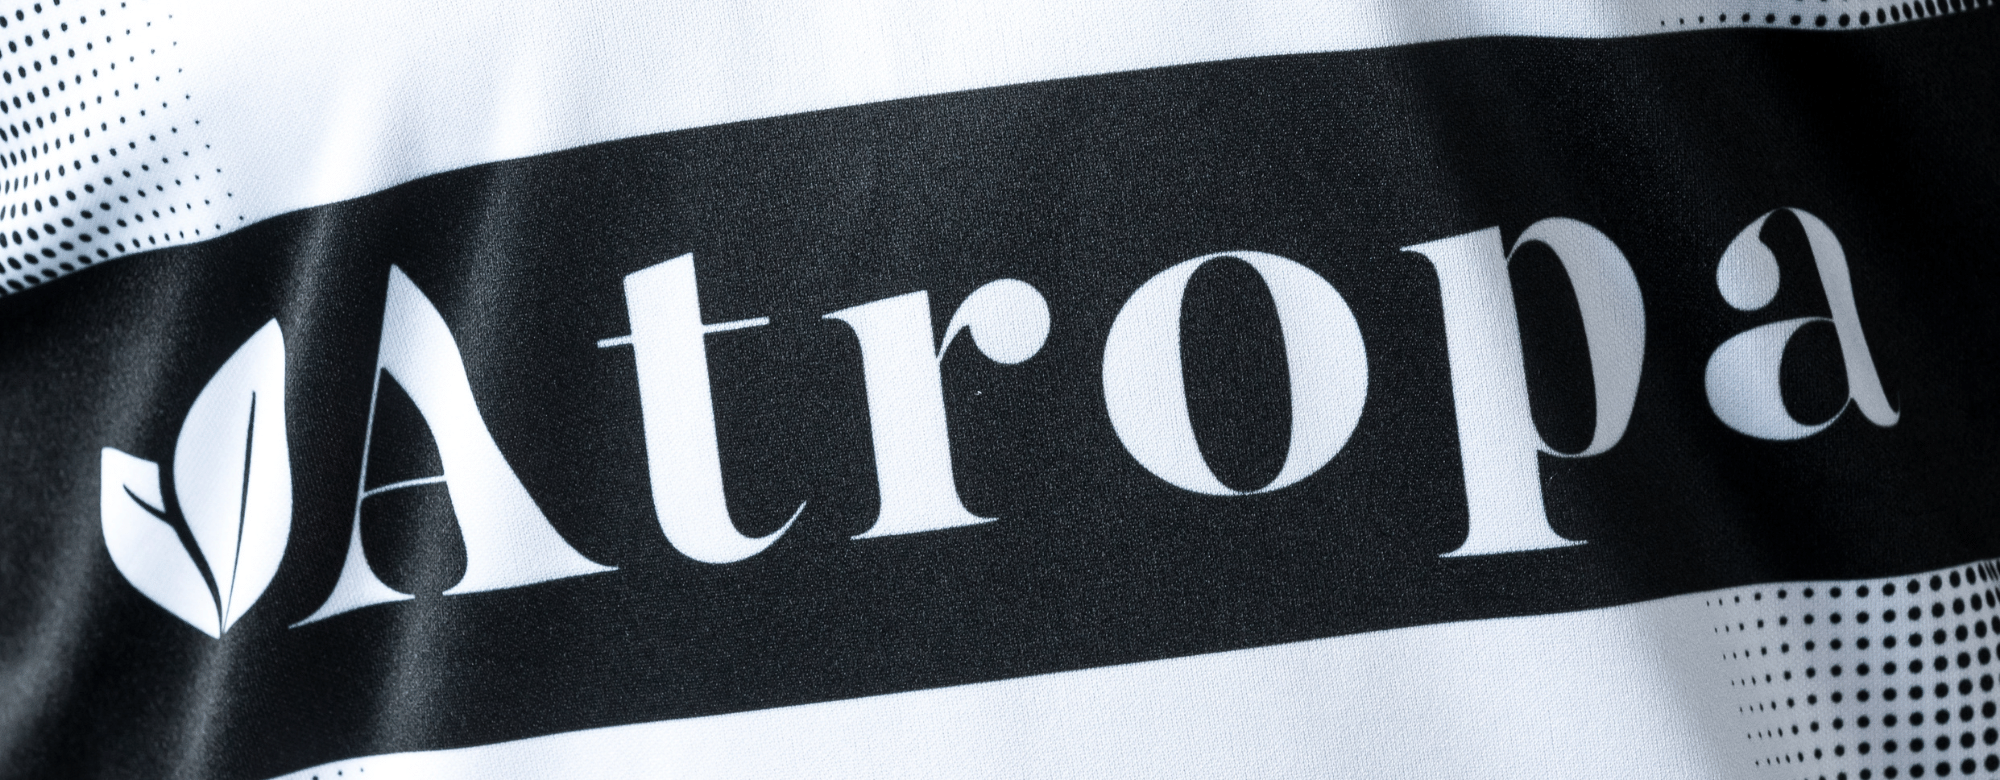 Cup Shirt Features Again Thanks To Atropa!